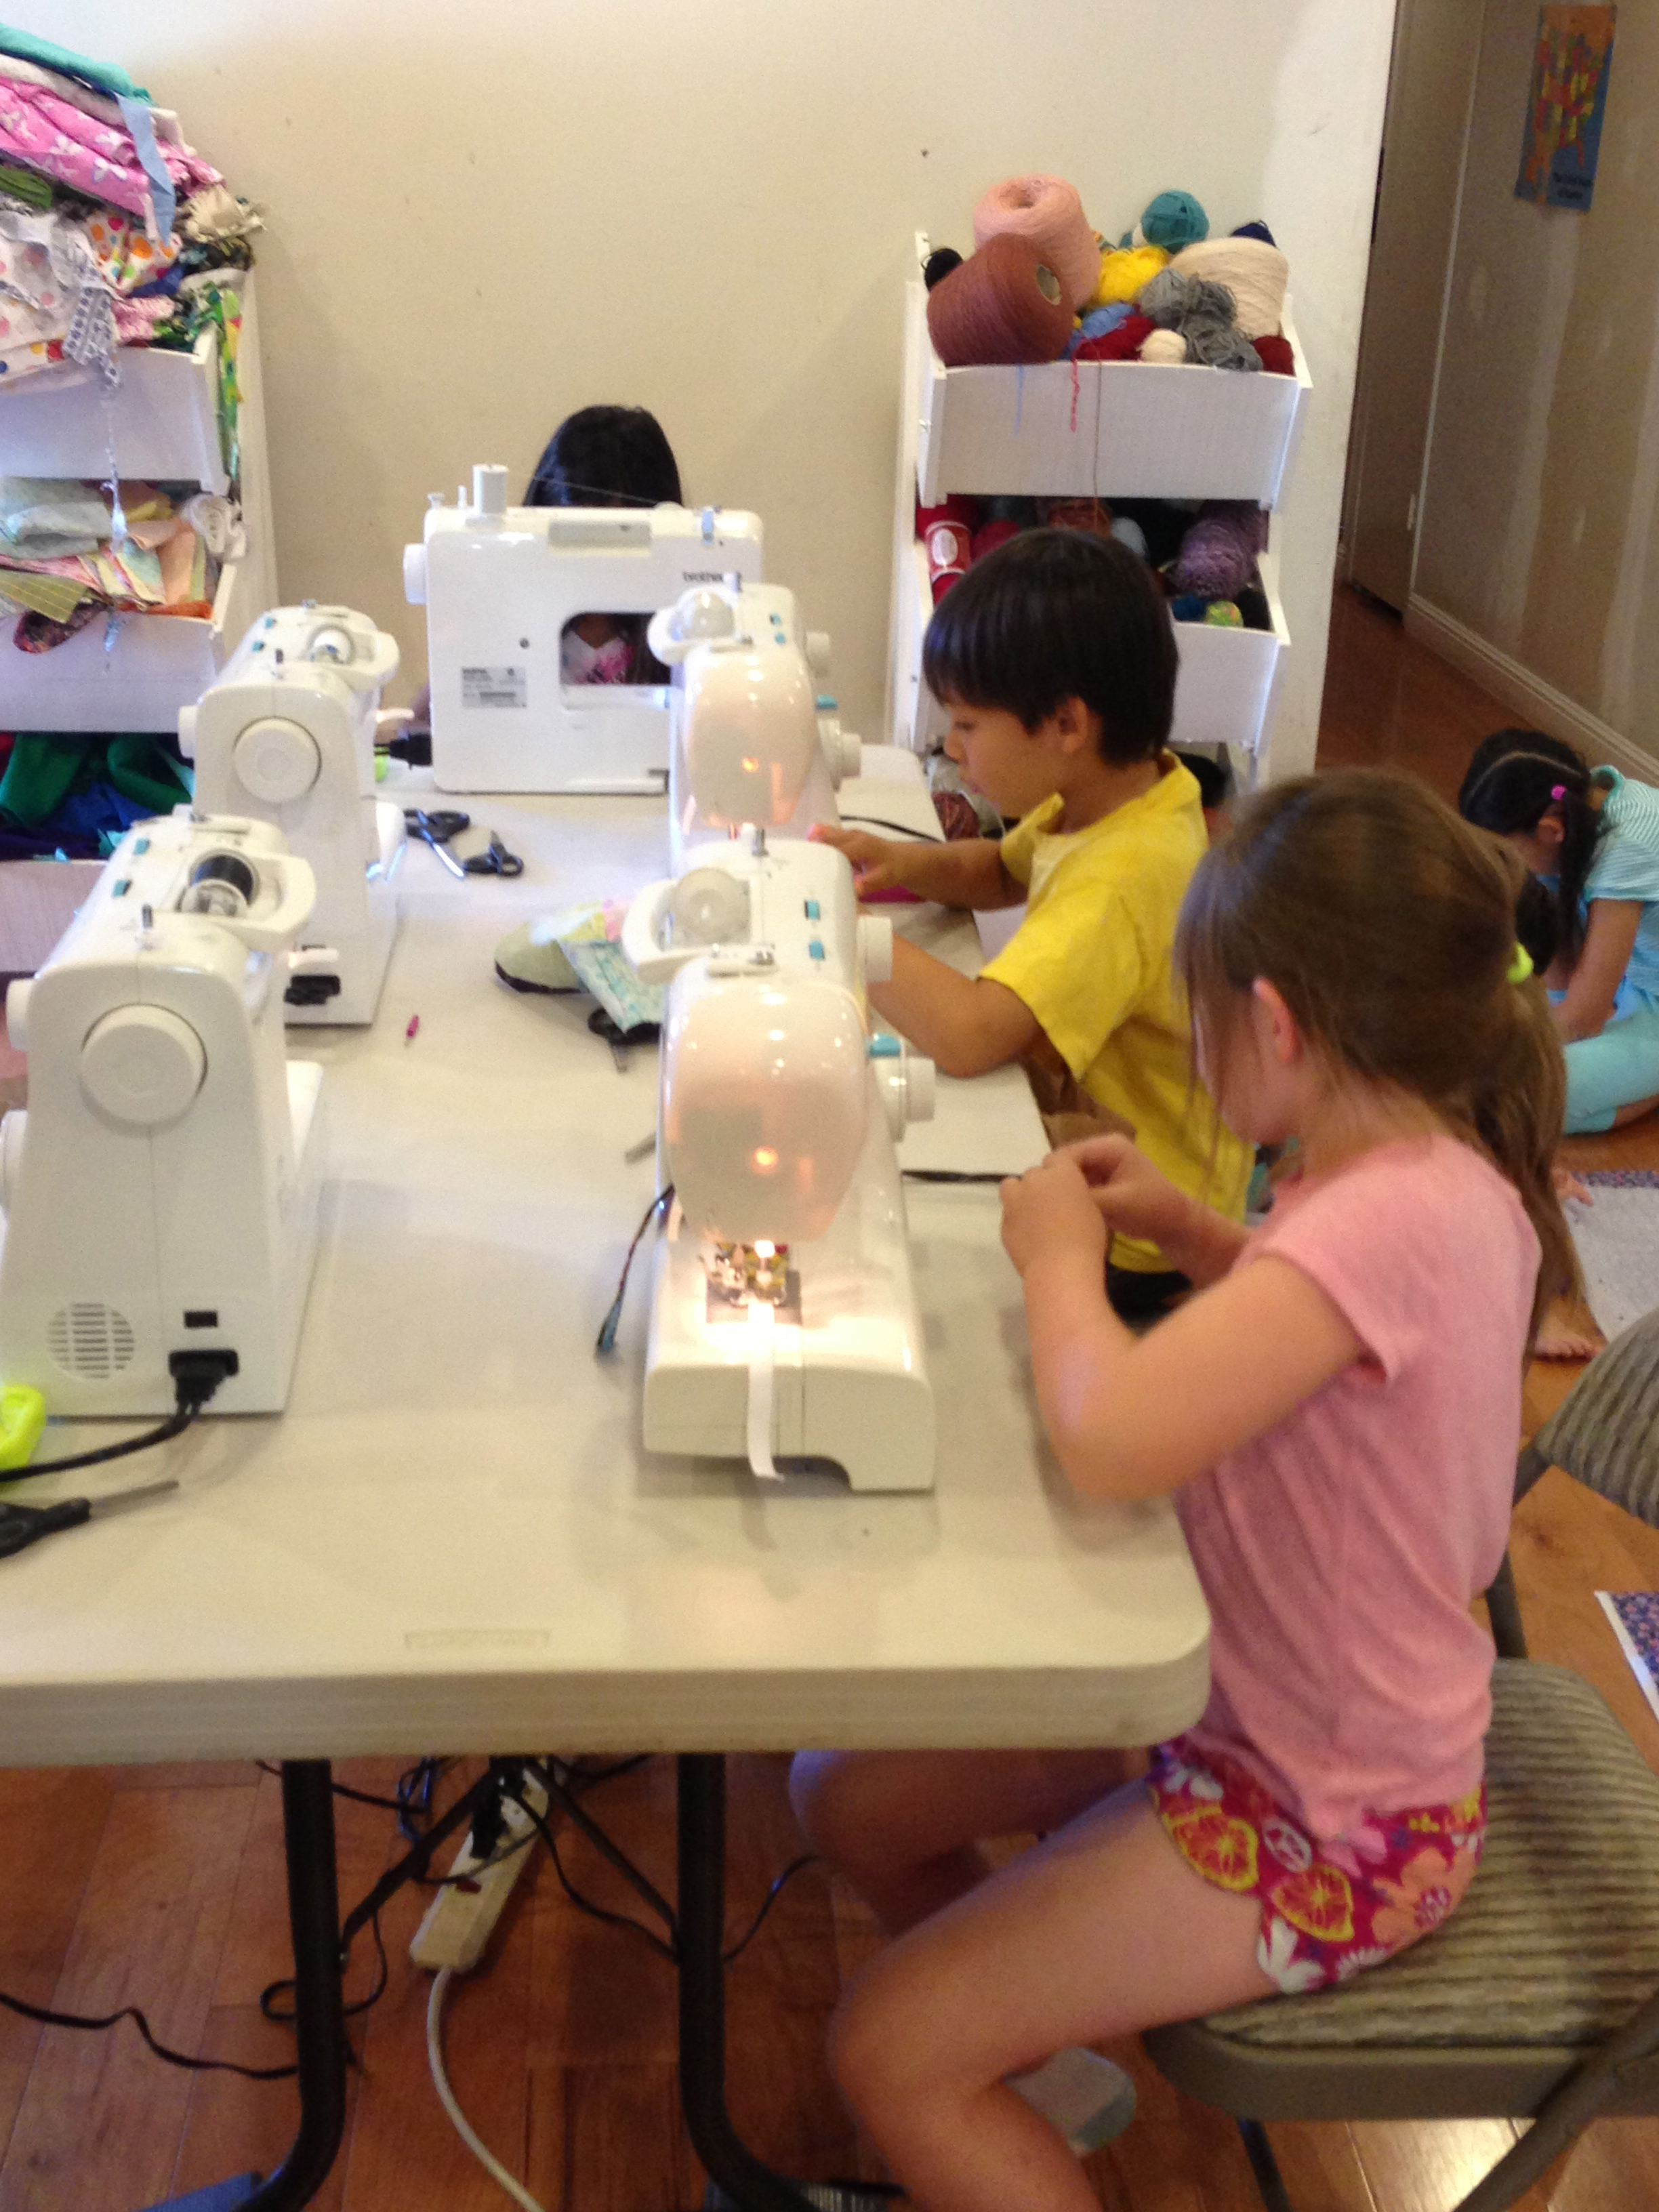 Lots of great sewing going on here!